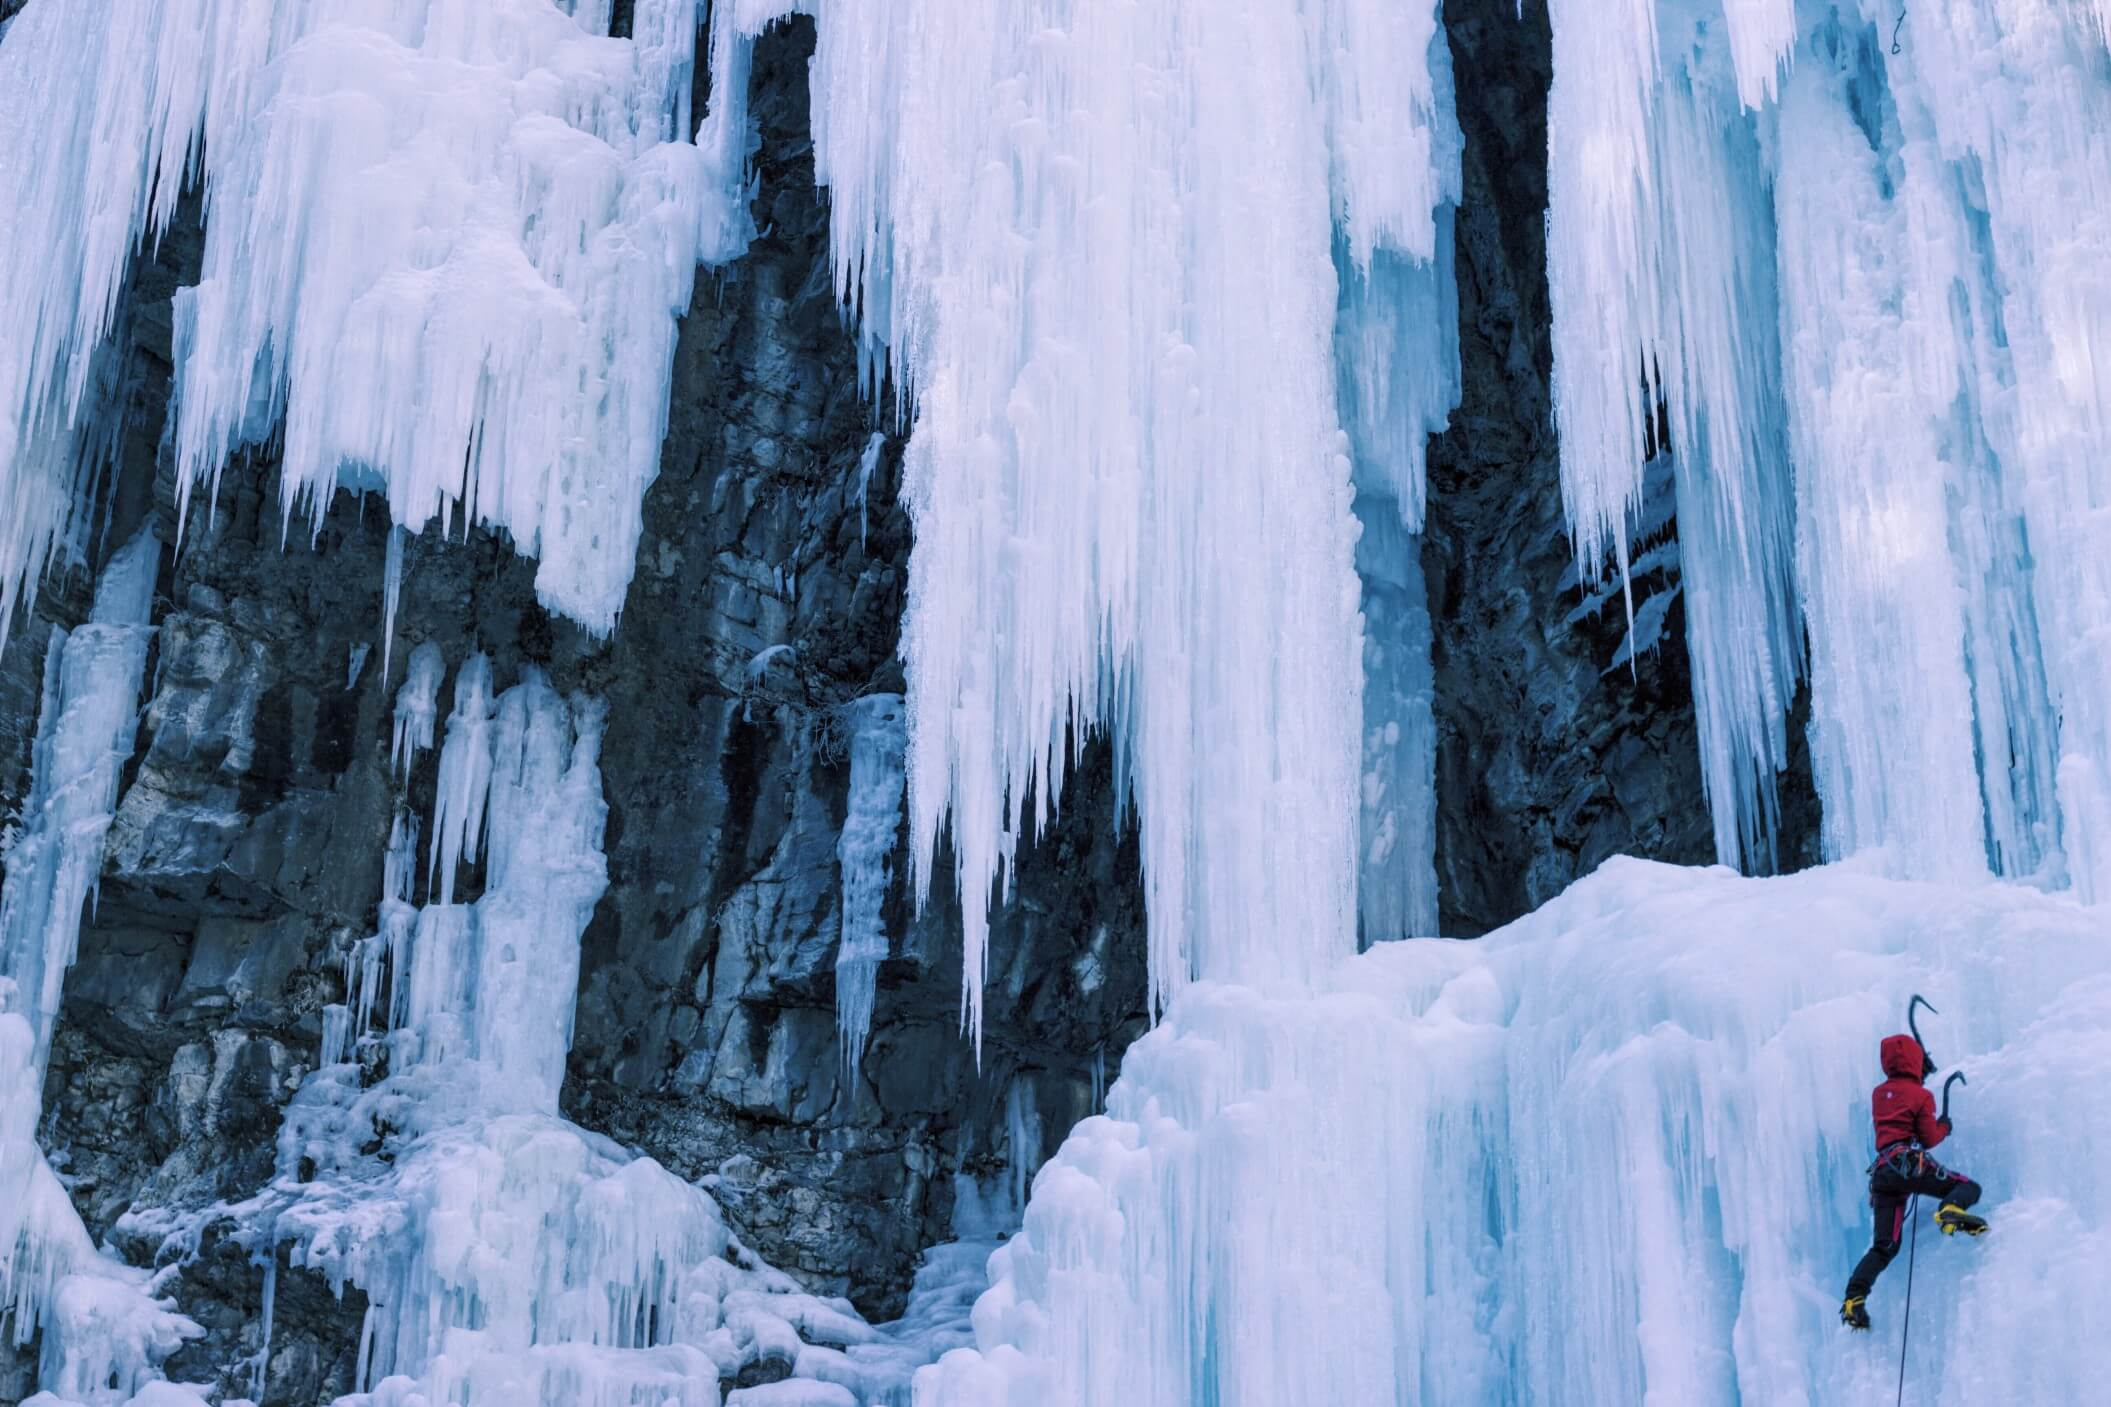 An ice climber ascending a frozen waterfall.